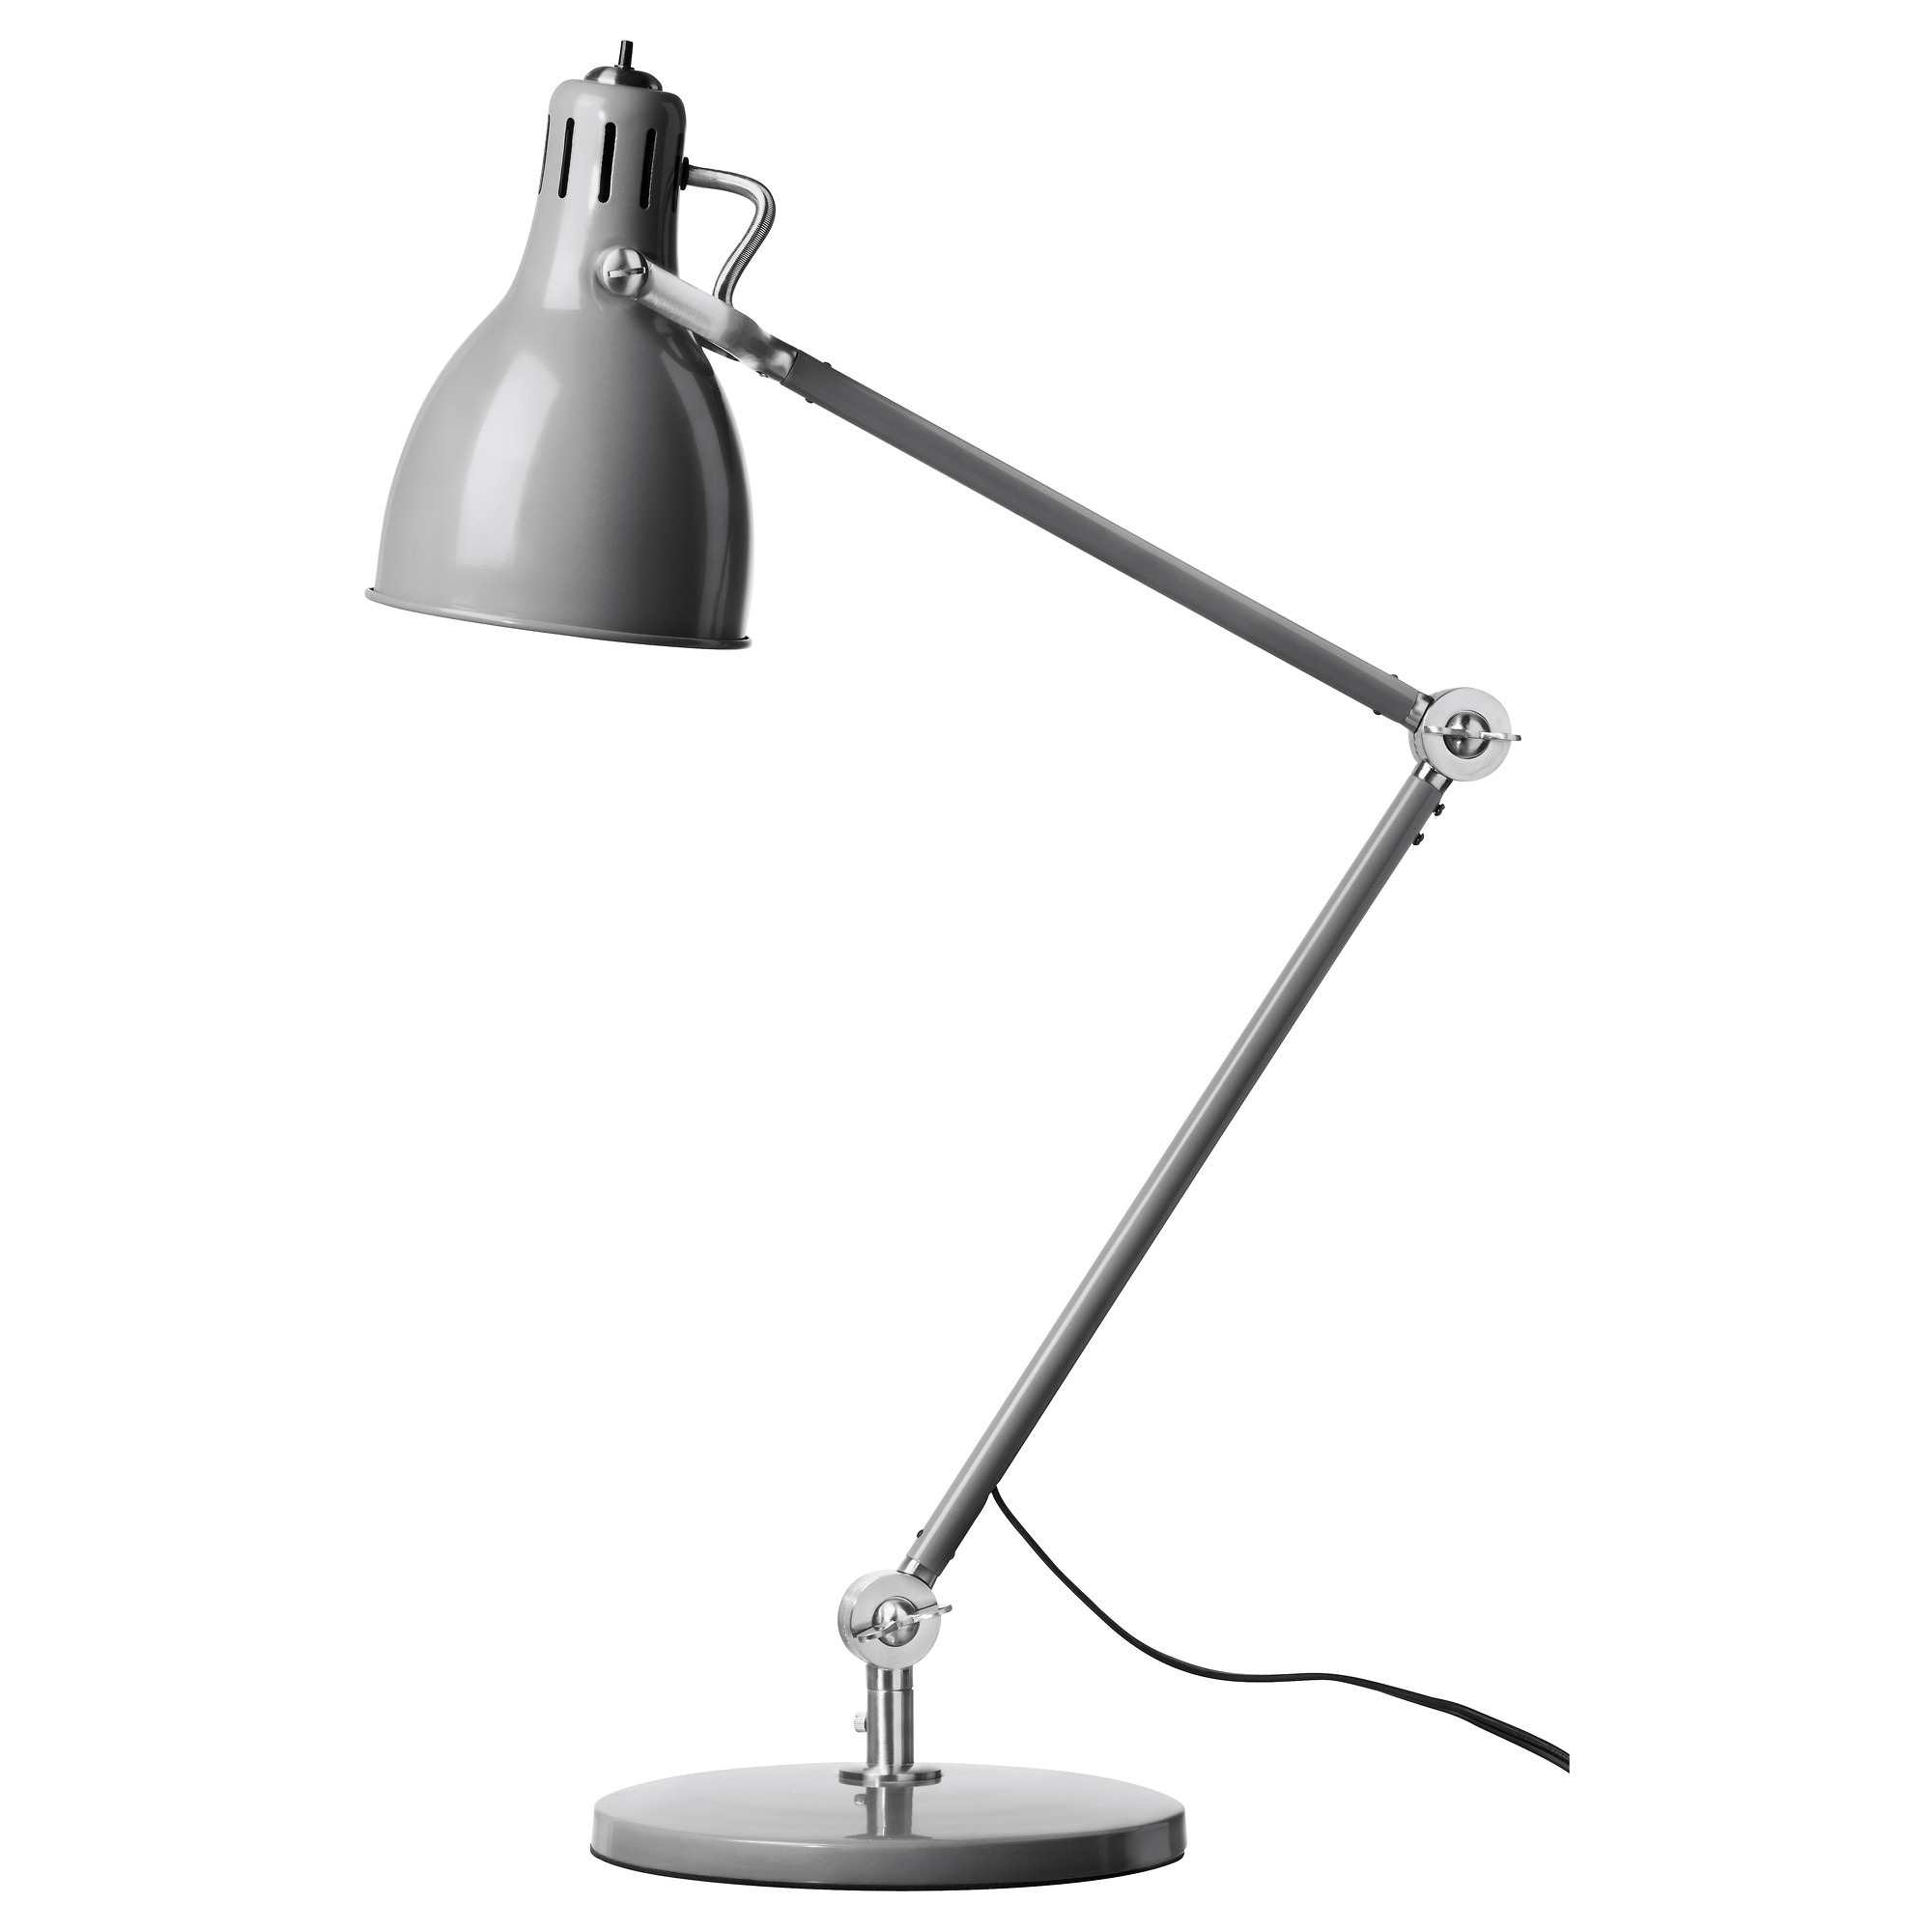 AR D Work lamp IKEA – Lamp on Desk